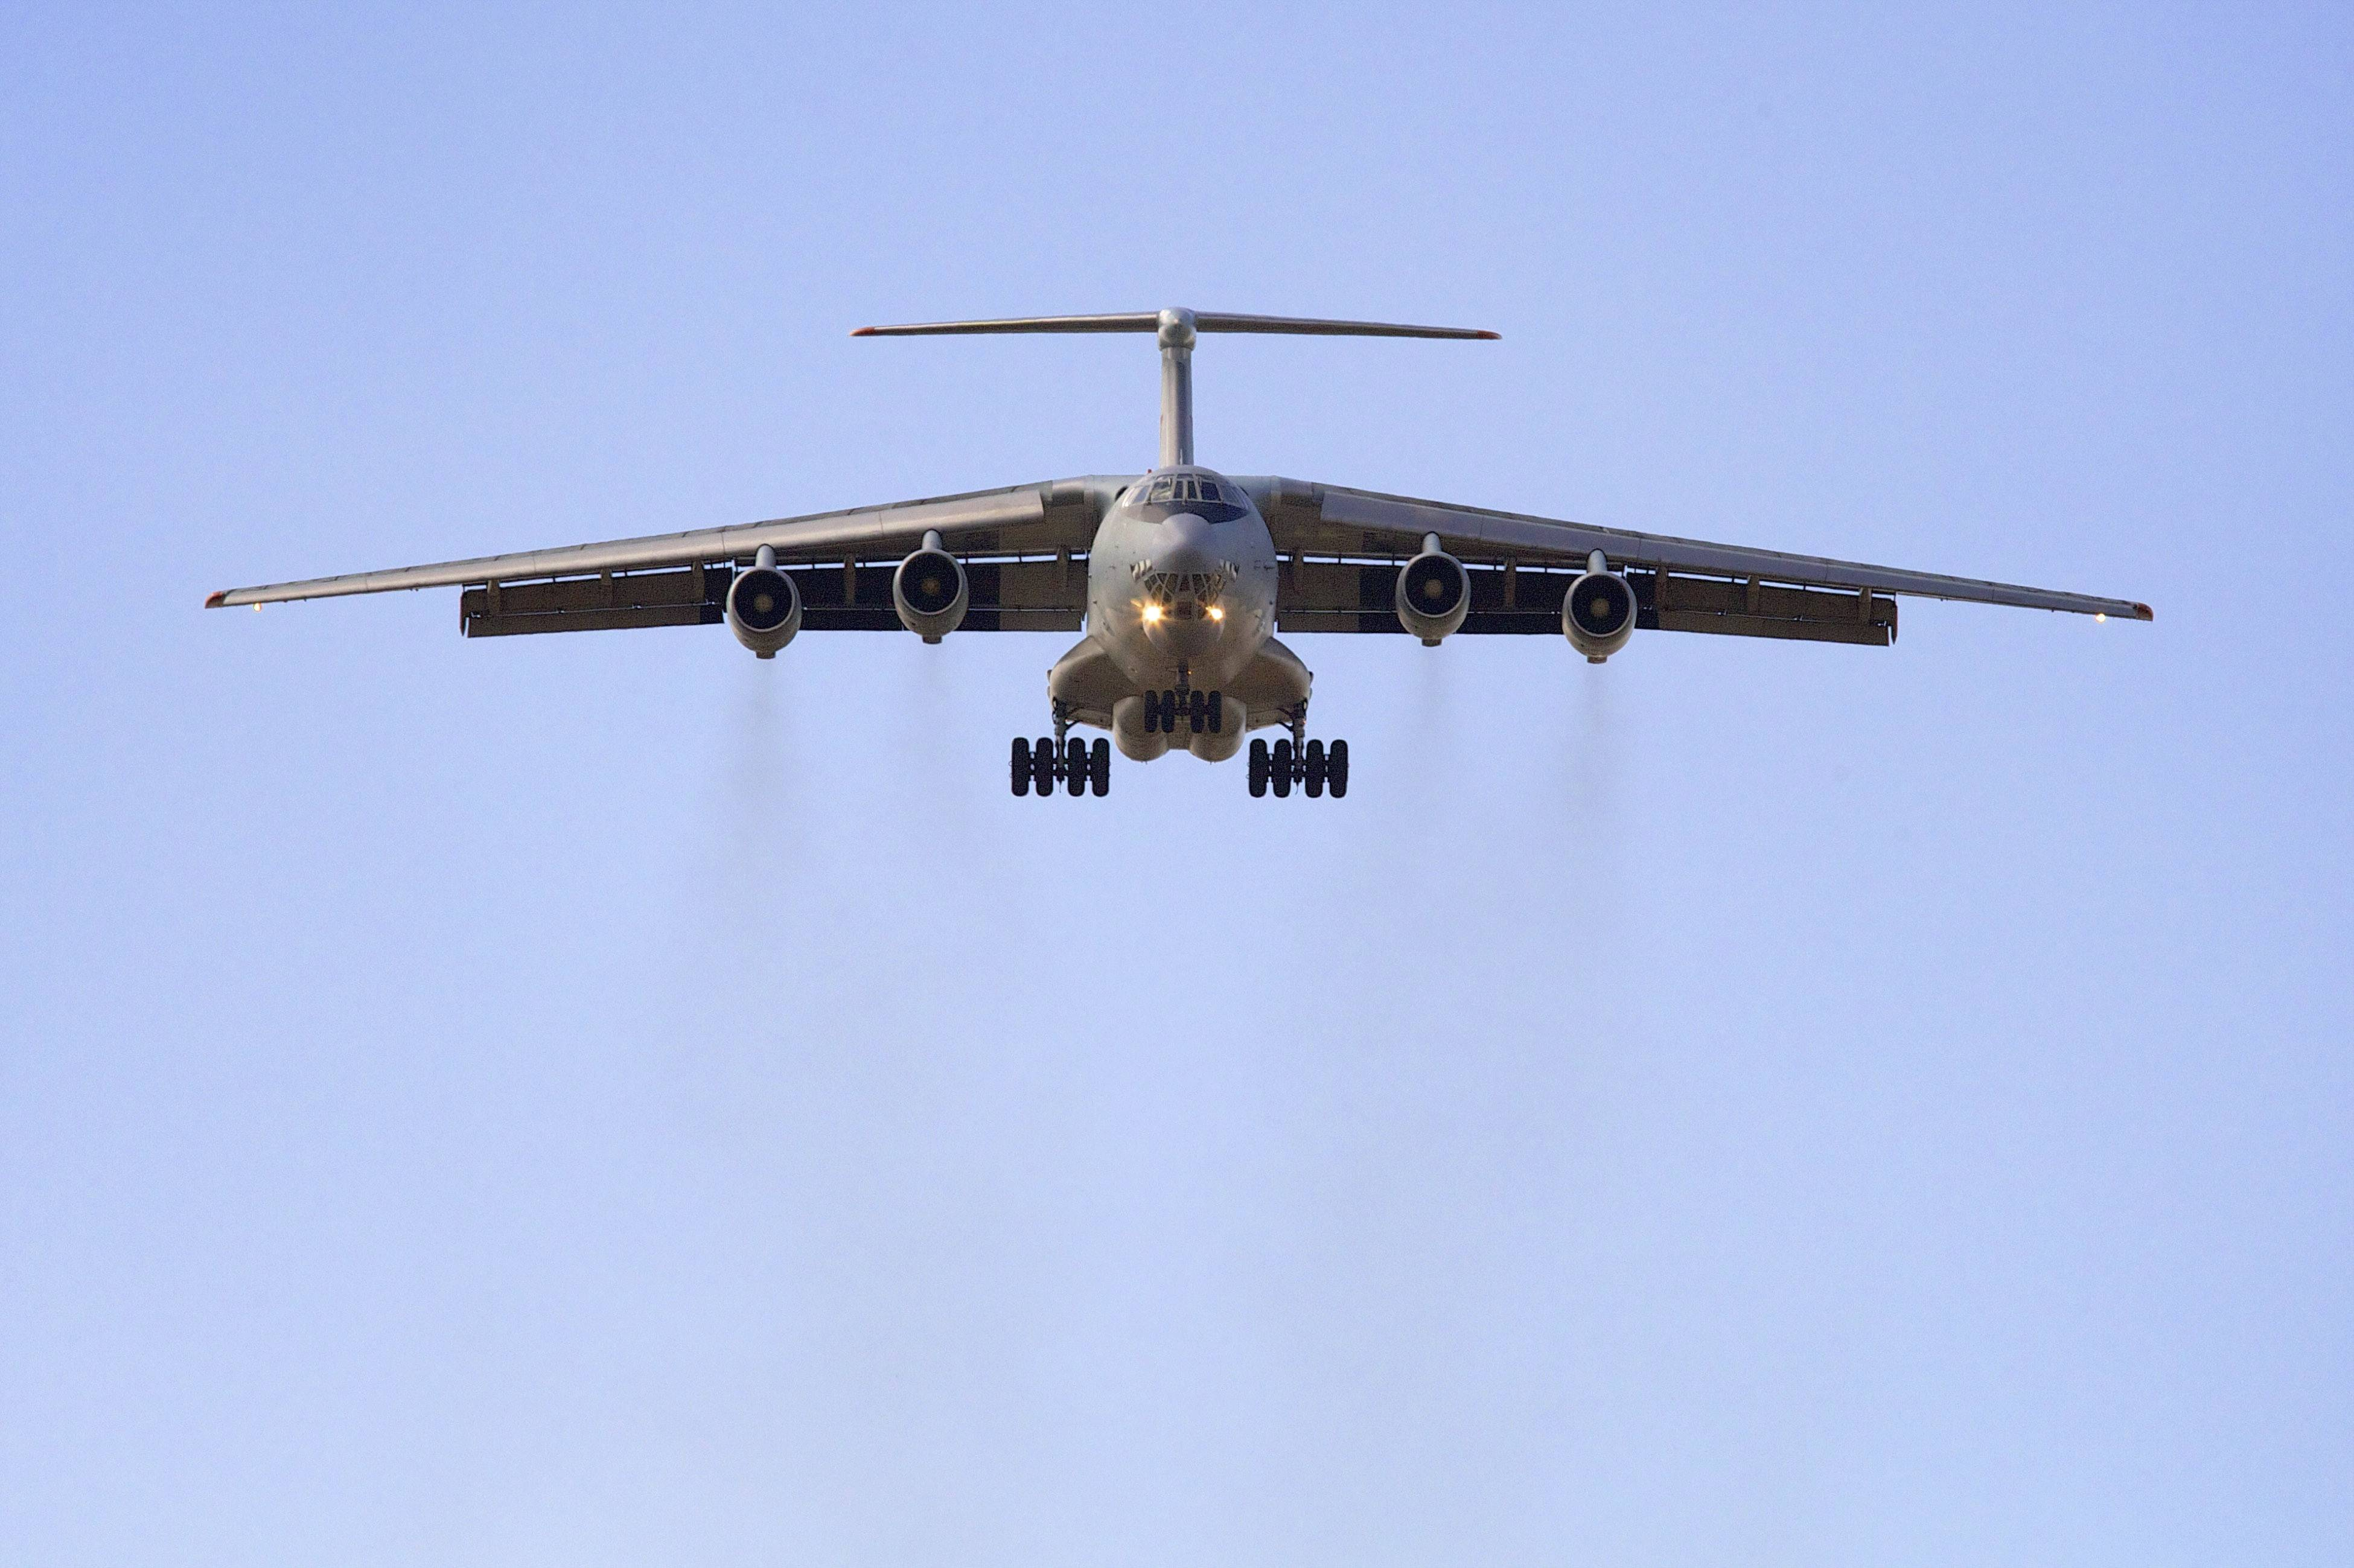 An Illyushin Il-76 prepares to land at Perth International Airport, Australia, after a search mission Wednesday trying to locate the missing Malaysia Airlines Flight 370.